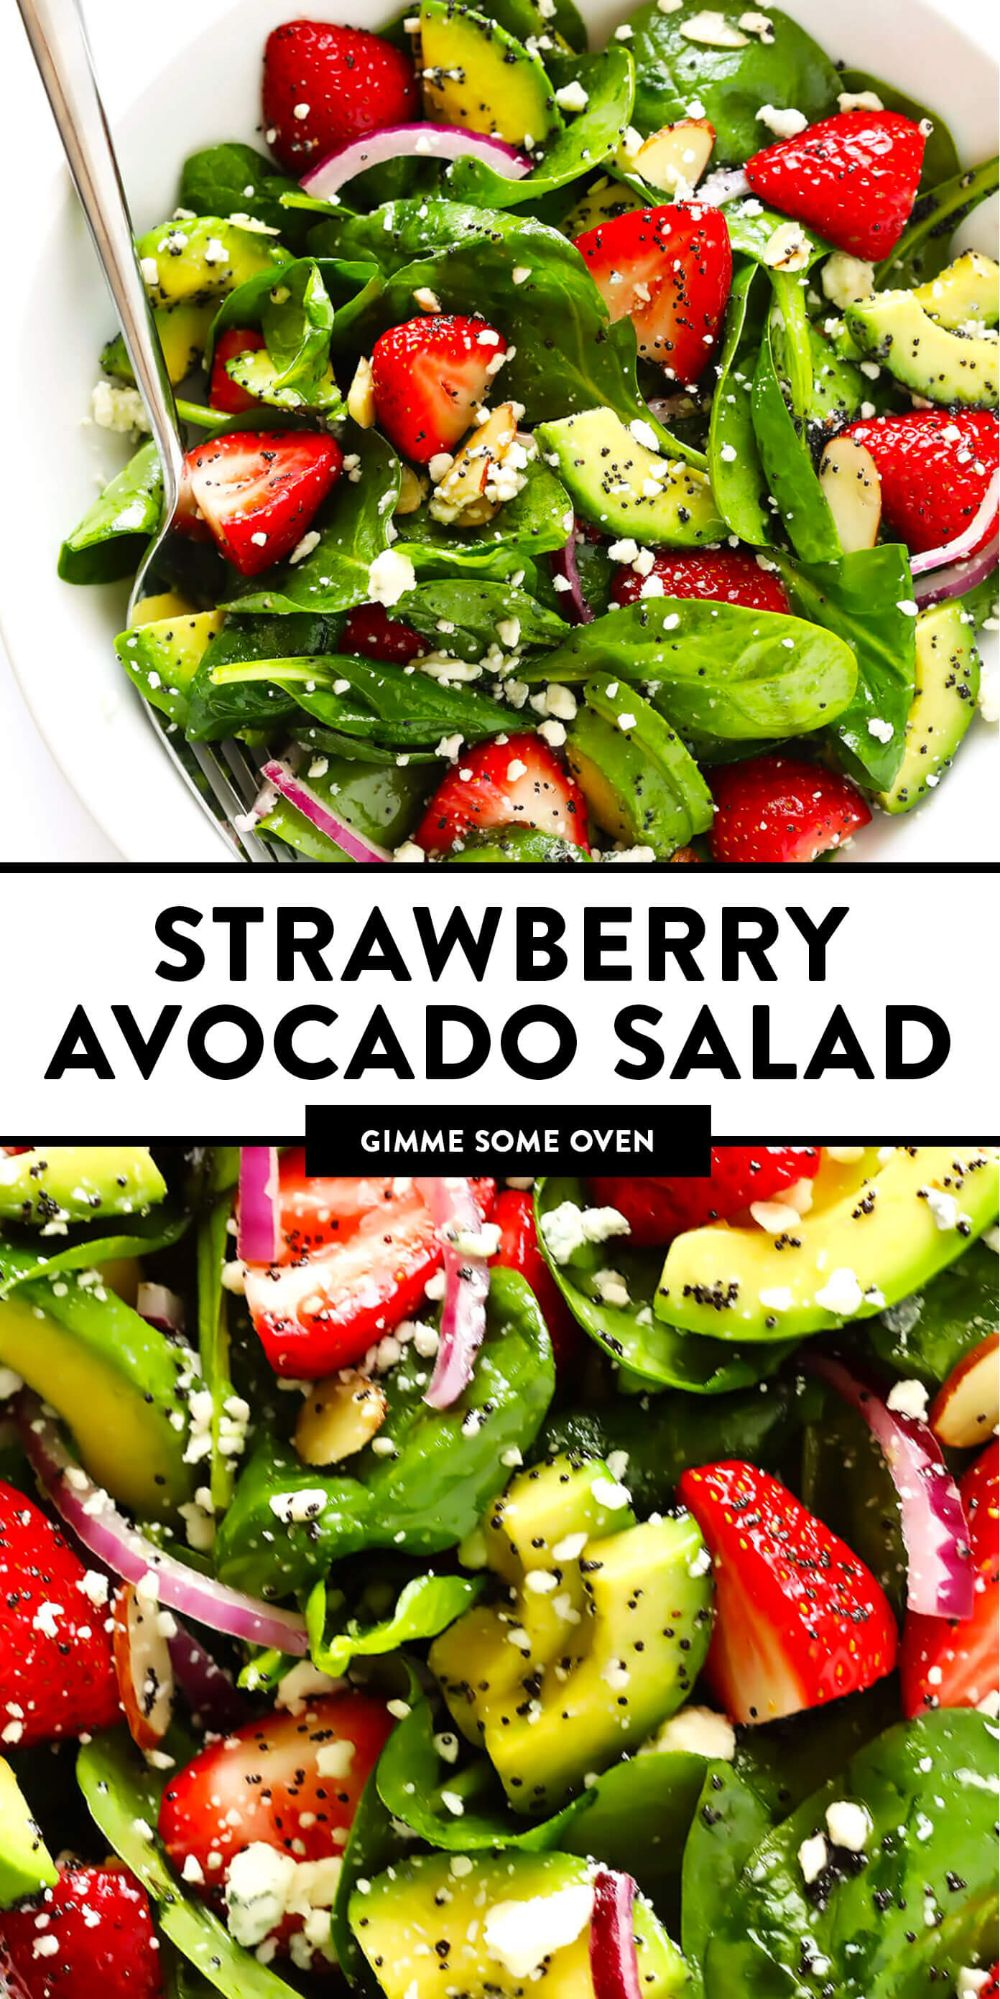 This Strawberry Avocado Spinach Salad recipe is made with juicy strawberries, tender spinach (or your choice of salad greens), red onion, toasted almonds, blue cheese (or feta or goat cheese) and a quick poppyseed dressing. It's easy to make, naturally gluten-free and vegetarian, and so delicious! | gimmesomeoven.com #salad #strawberry #avocado #dressing #vinaigrette #summer #healthy #glutenfree